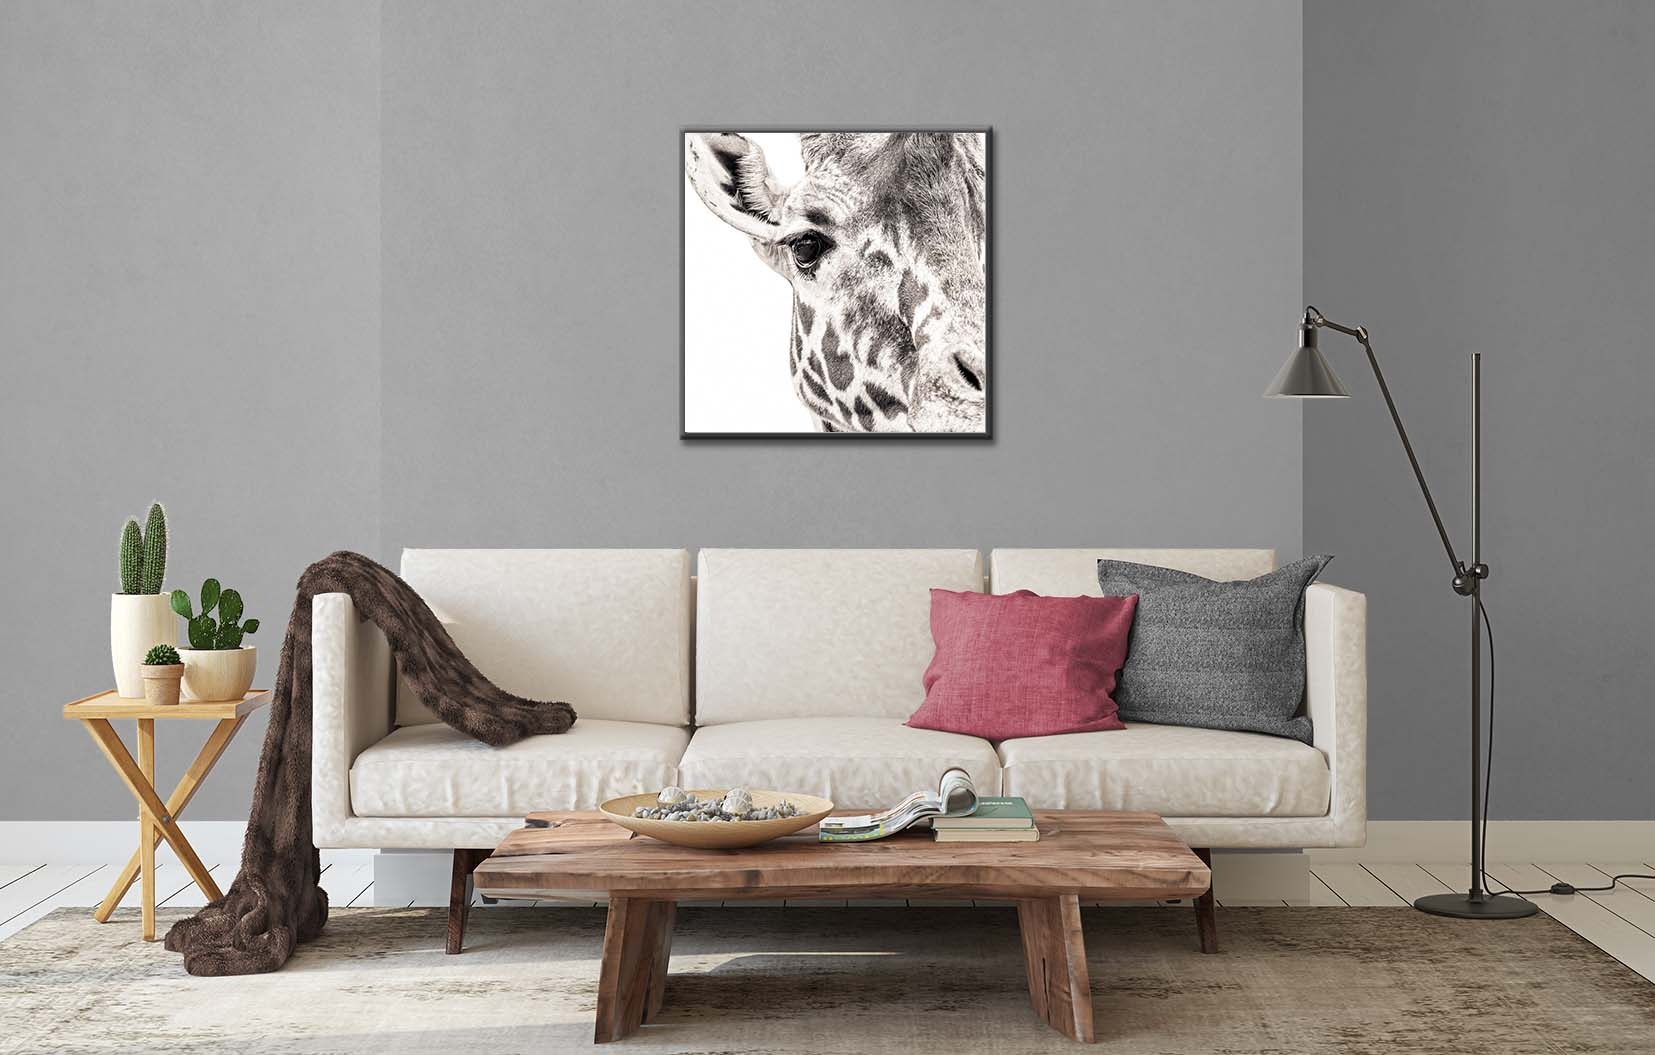 A black and white photograhic portraits of a giraffe. Limited edtion prints by fine art photographer Paul Coghlin.